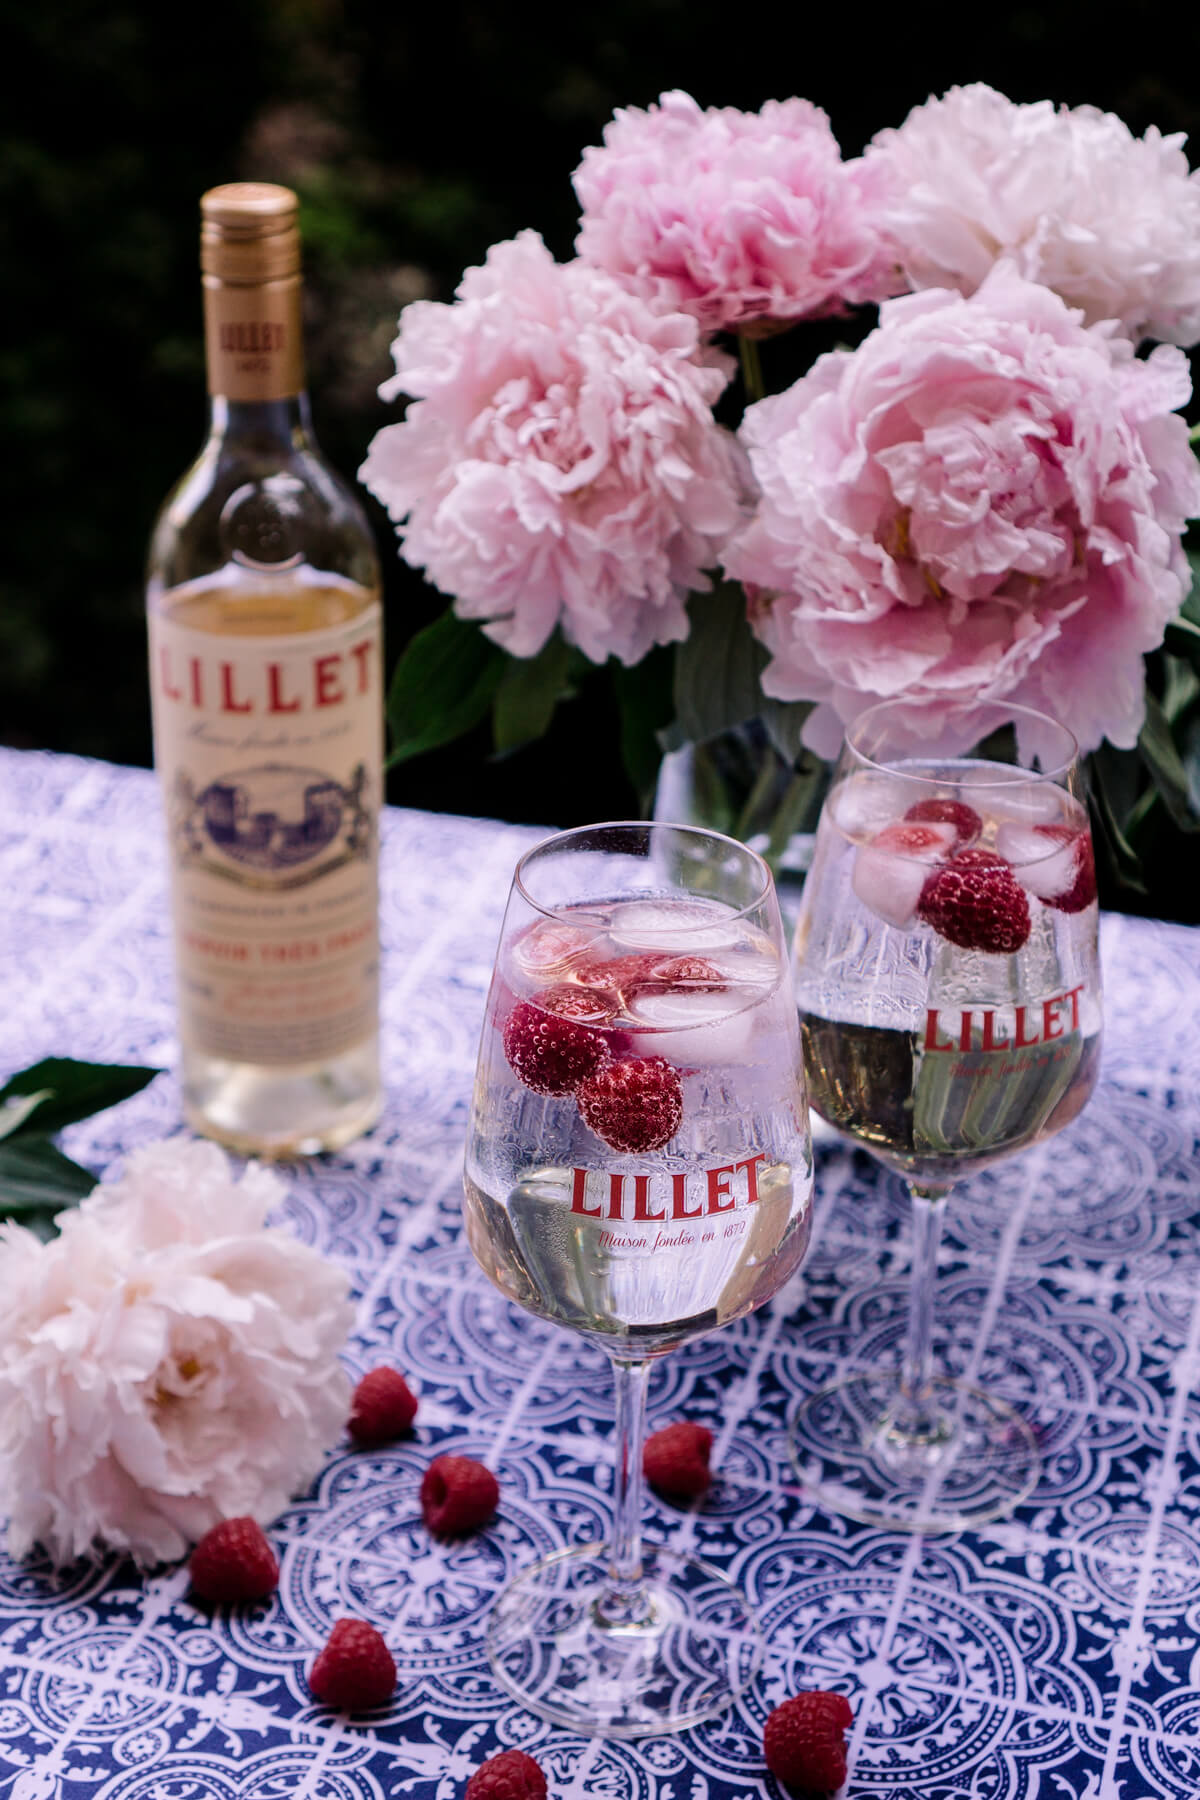 Lillet Cocktail Recipe